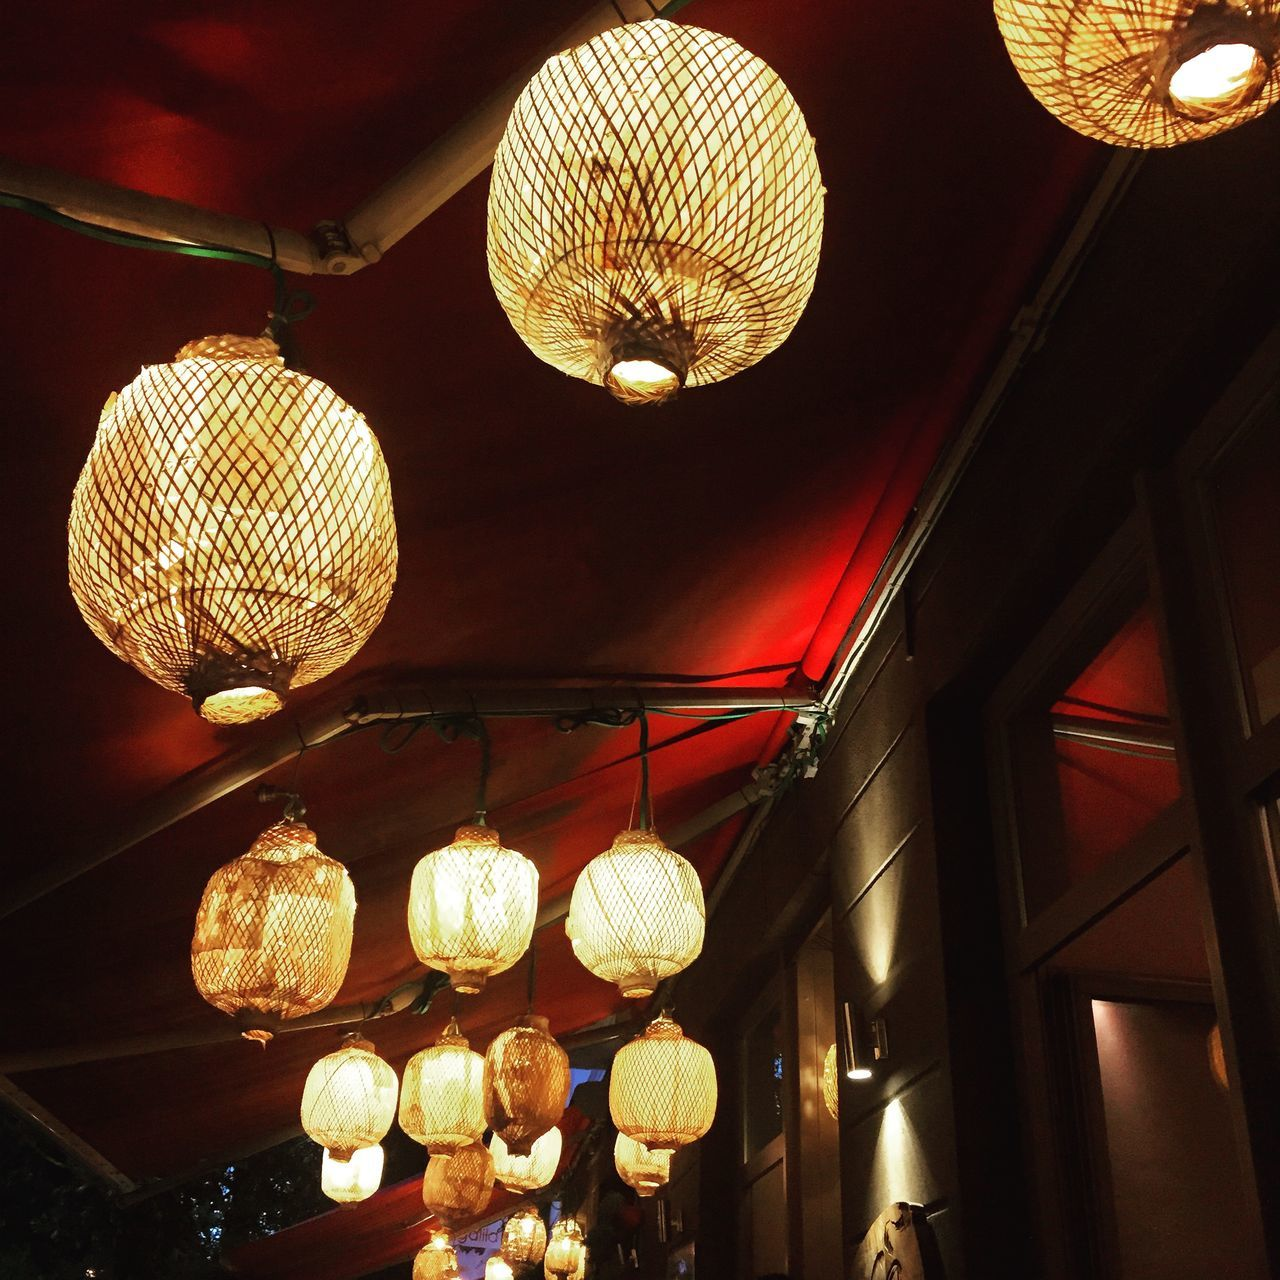 hanging, lighting equipment, low angle view, ceiling, illuminated, indoors, electricity, no people, lantern, light bulb, technology, day